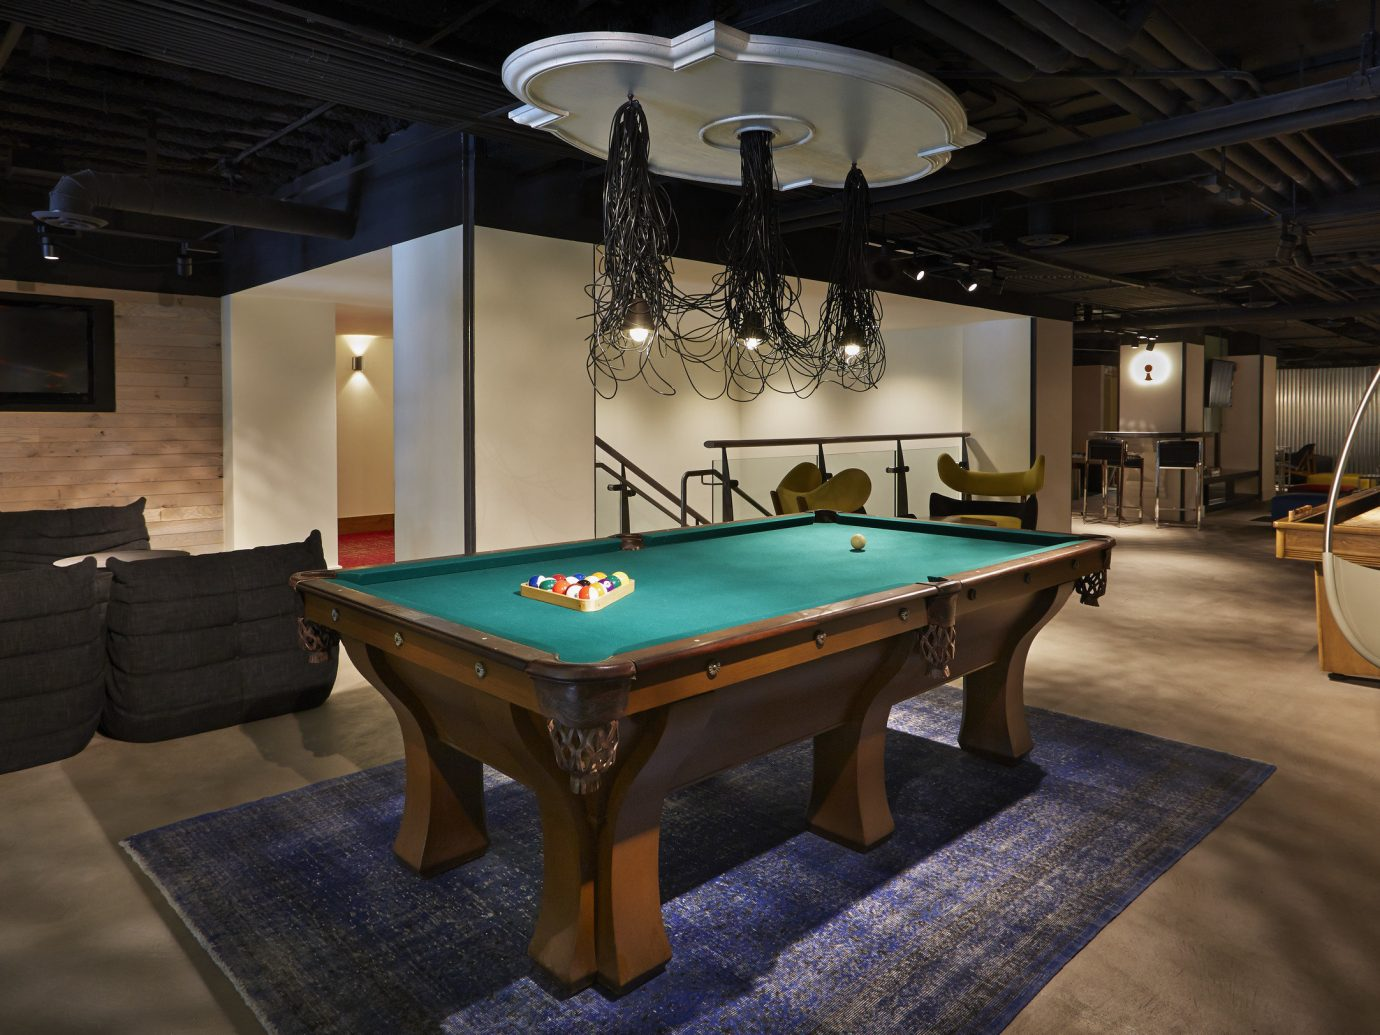 Hotels indoor floor billiard room recreation room room ceiling cue sports table Pool games estate billiard table interior design recreation indoor games and sports screenshot Design furniture